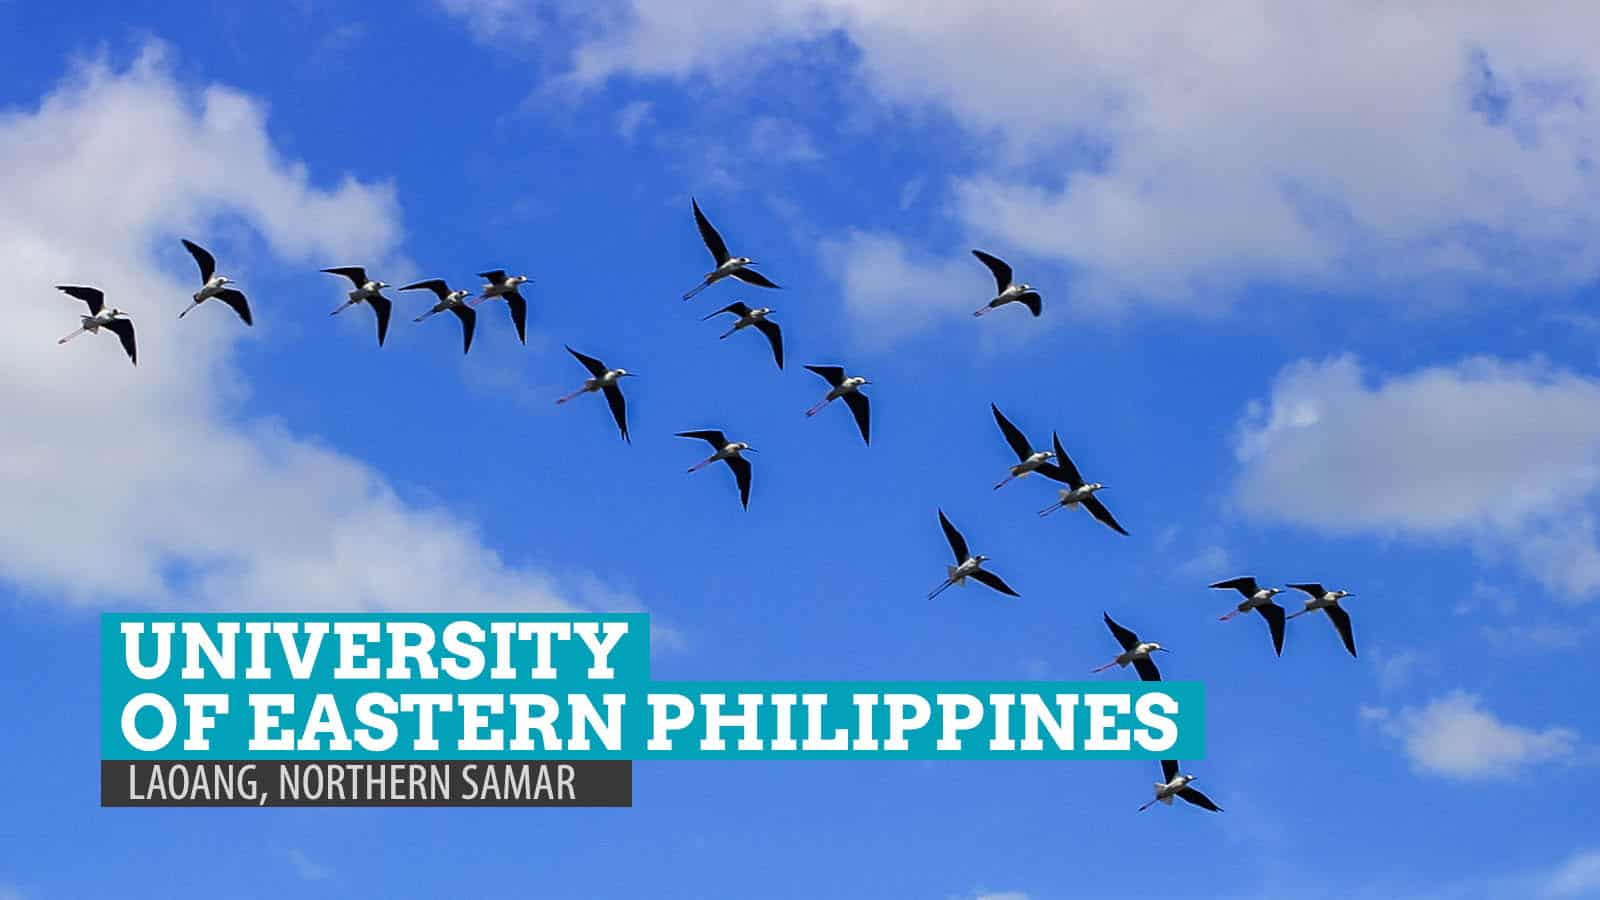 Birdwatching at University of Eastern Philippines: Laoang, Northern Samar